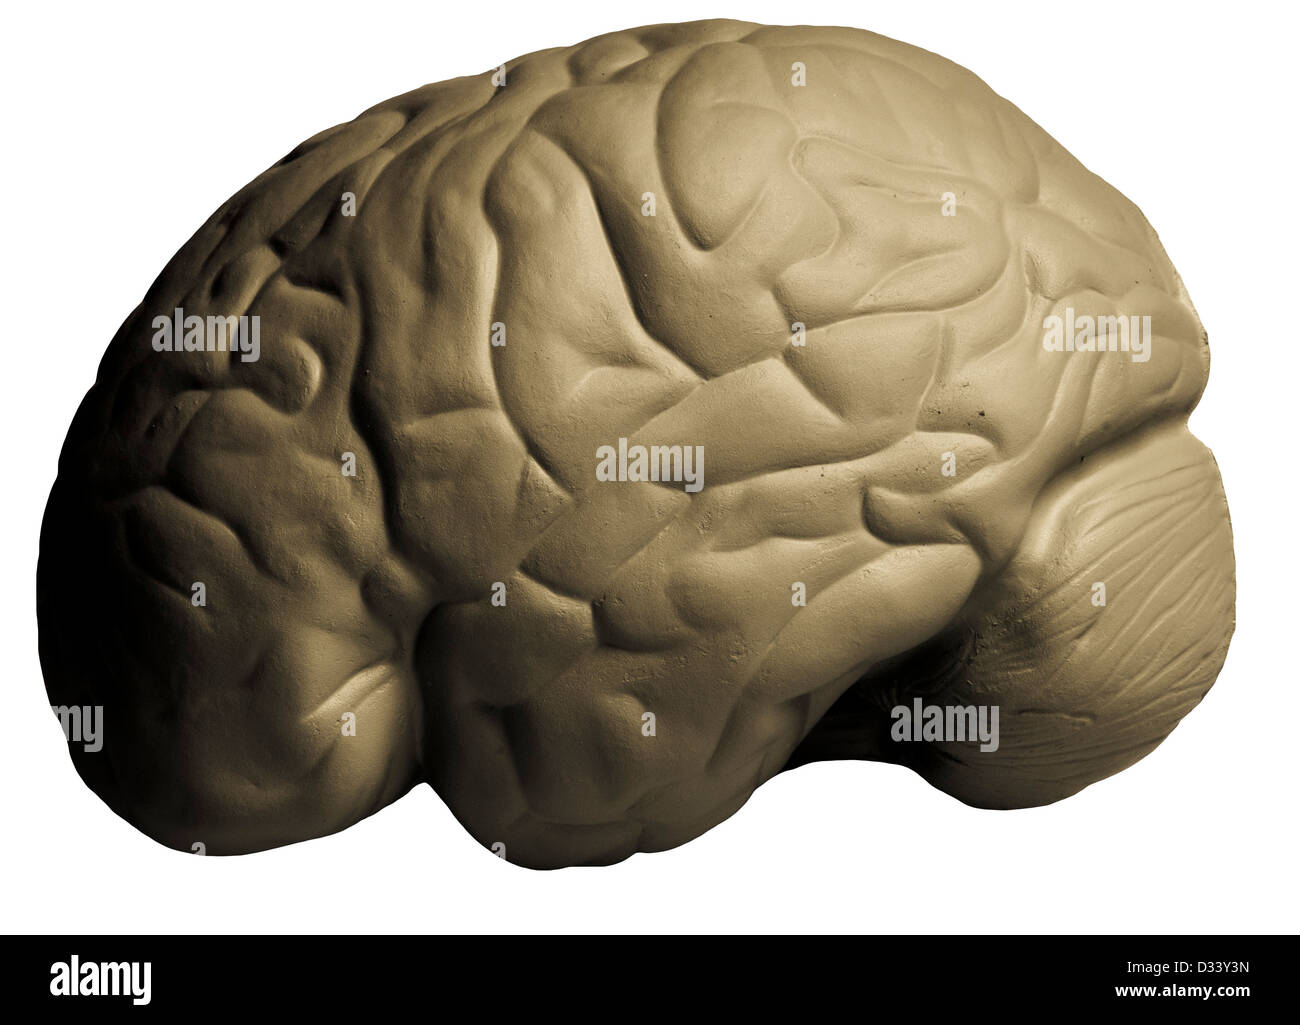 Human Brain Model For Anatomy Studying Stock Photo 53562201 Alamy